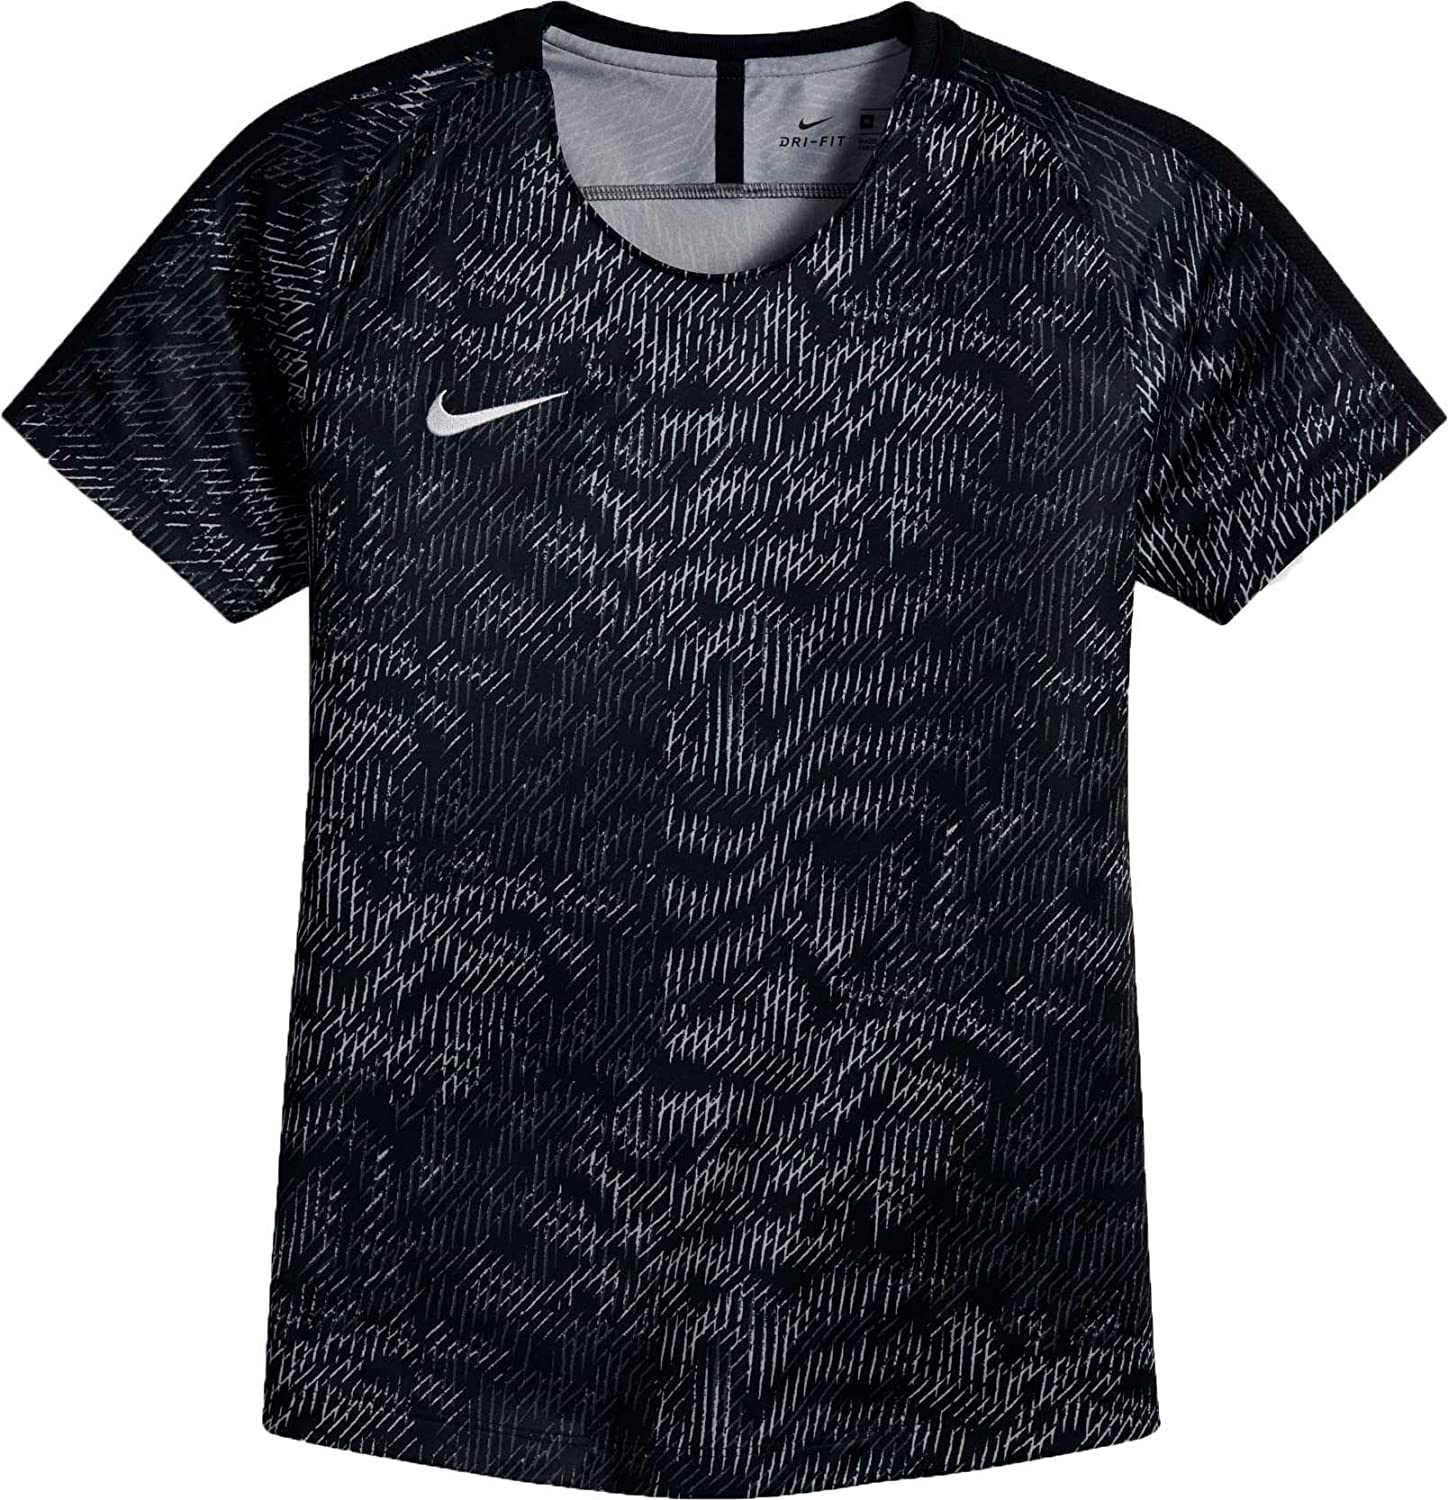 Nike Girls ' Dry AcademyサッカーTシャツ B0798L8FZ6 X-Small|Darkgrey/White/Black Darkgrey/White/Black X-Small